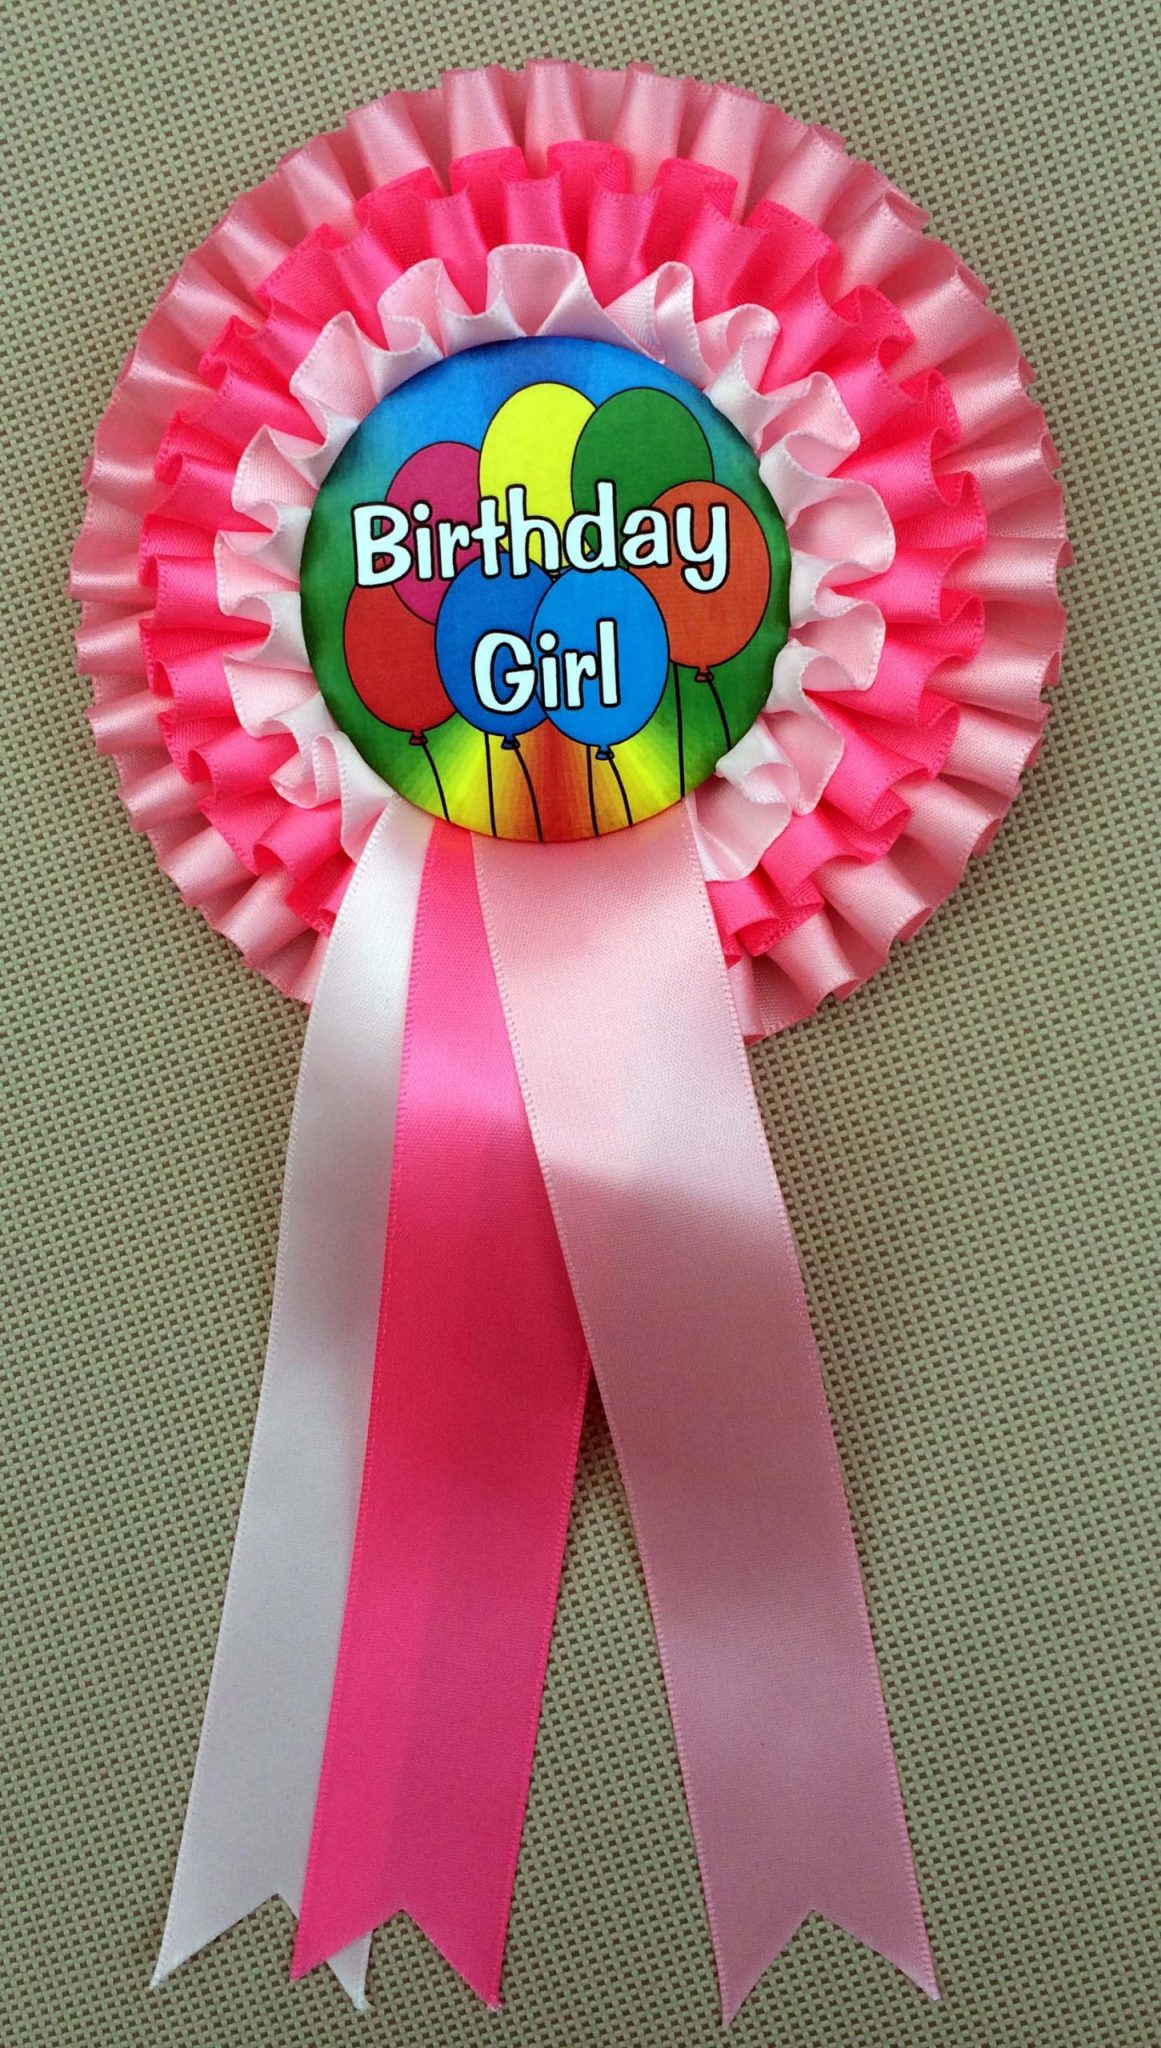 Special Offer on STANDARD BIRTHDAY Triple Rosettes